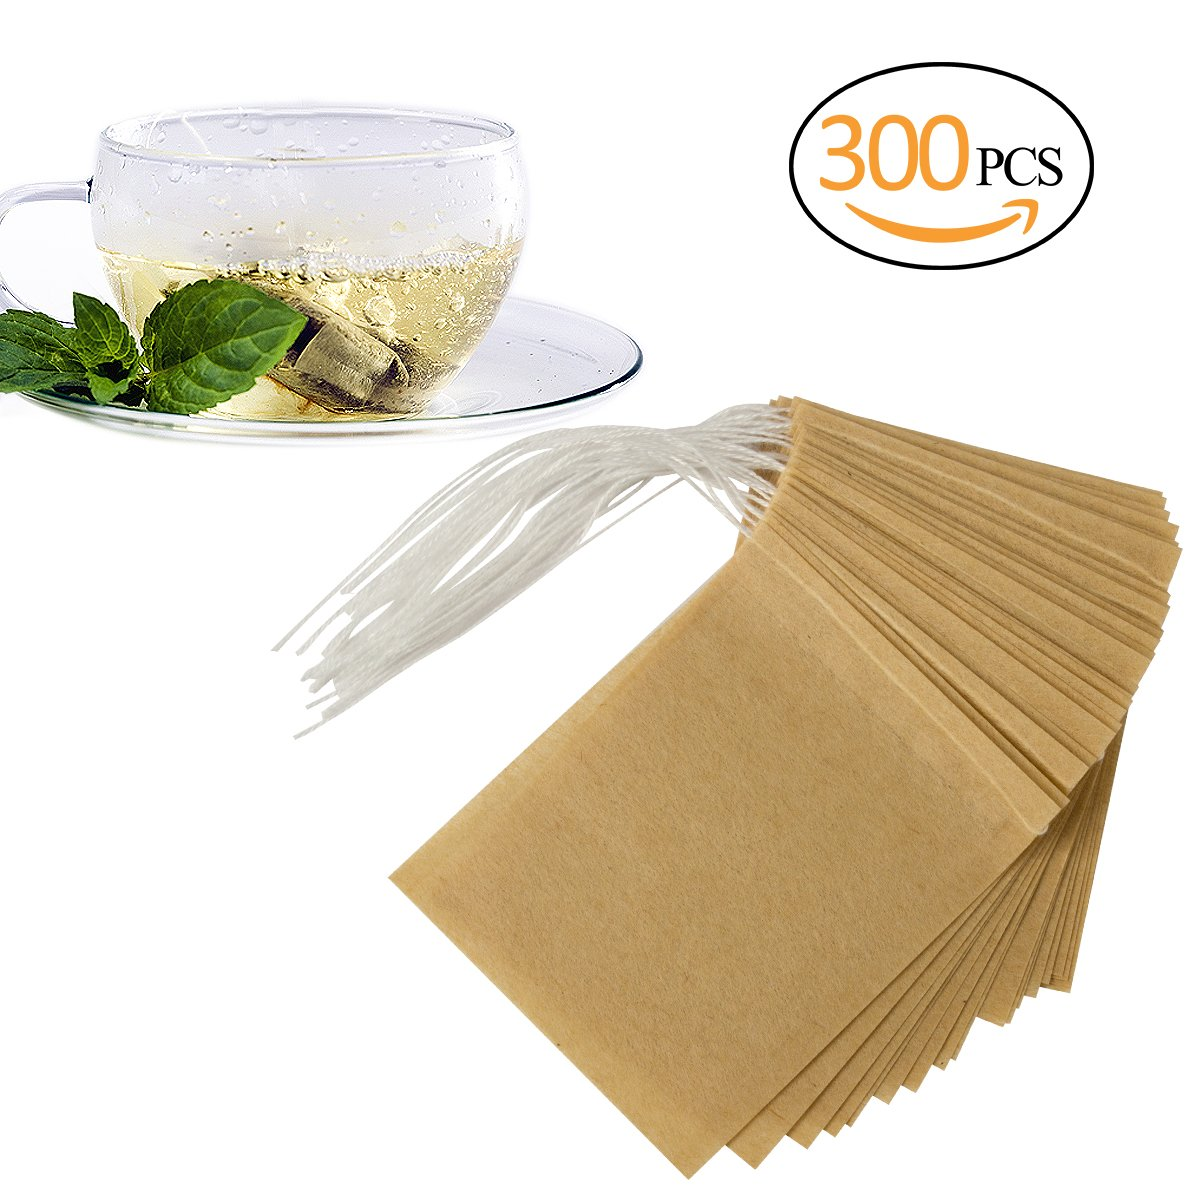 ANPHSIN 300 Pieces Empty Tea Filter Bags, Large Size 3.5 x 2.7'' Disposable Tea Infusers Safe & Natural Bags with Drawstring for Loose Leaf Tea